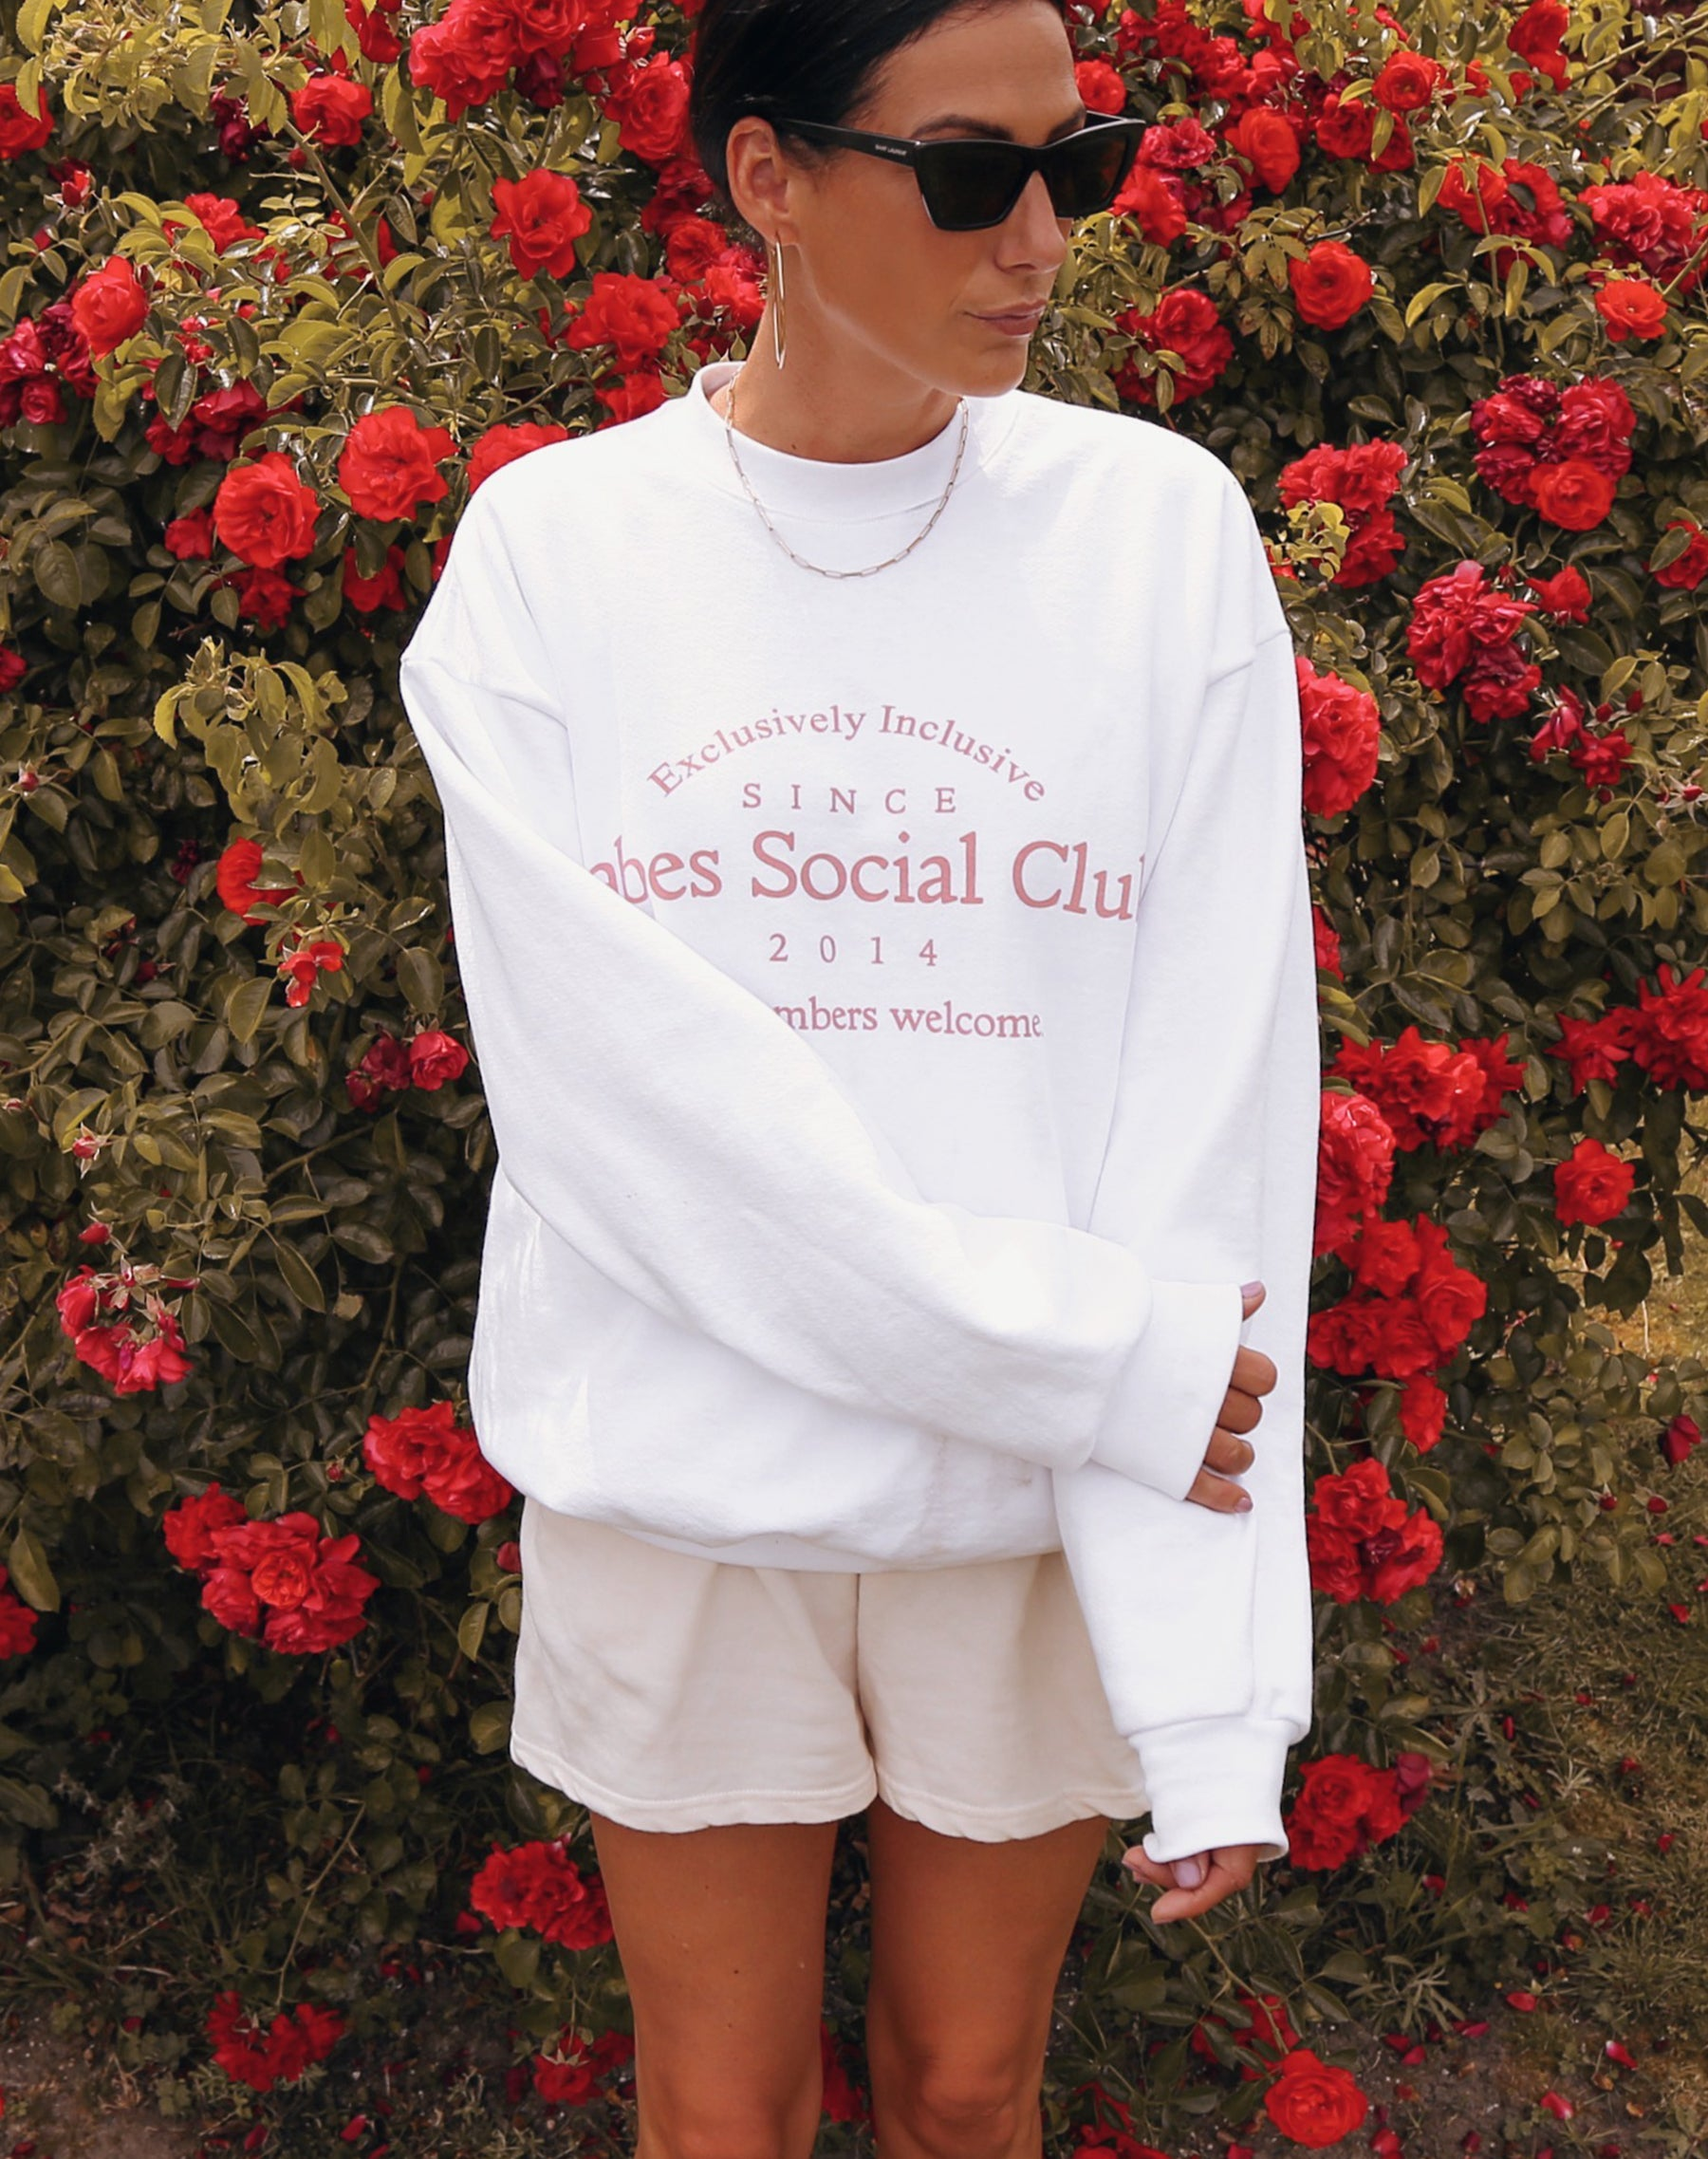 This is a photo of the Babes Social Club Crew Neck Sweatshirt in white and pink by Brunette the Label.